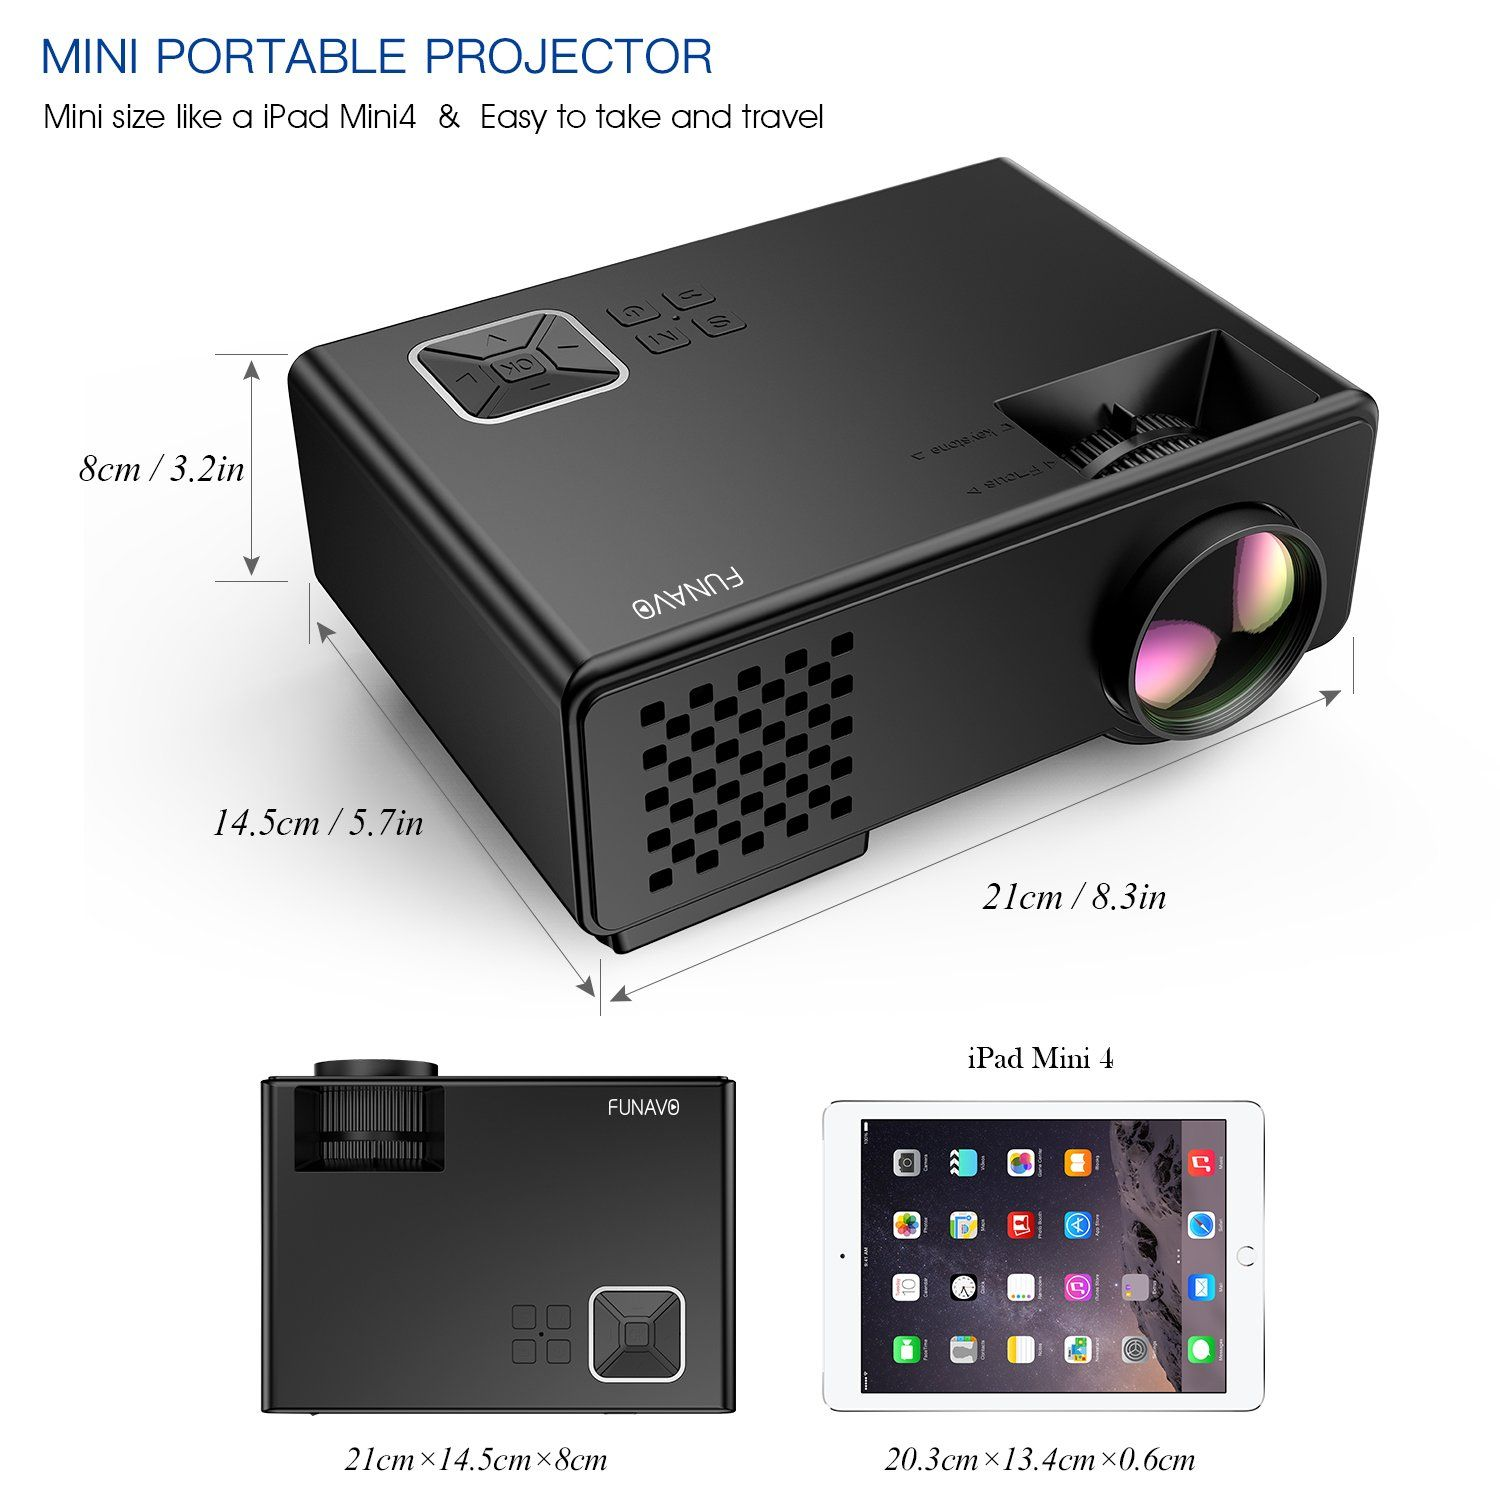 b0b89c77278778 Projector FUNAVO 1500 Lumens LED Portable Mini Projector Multimedia Home  Theater Video Projectors Support 1080P Laptop